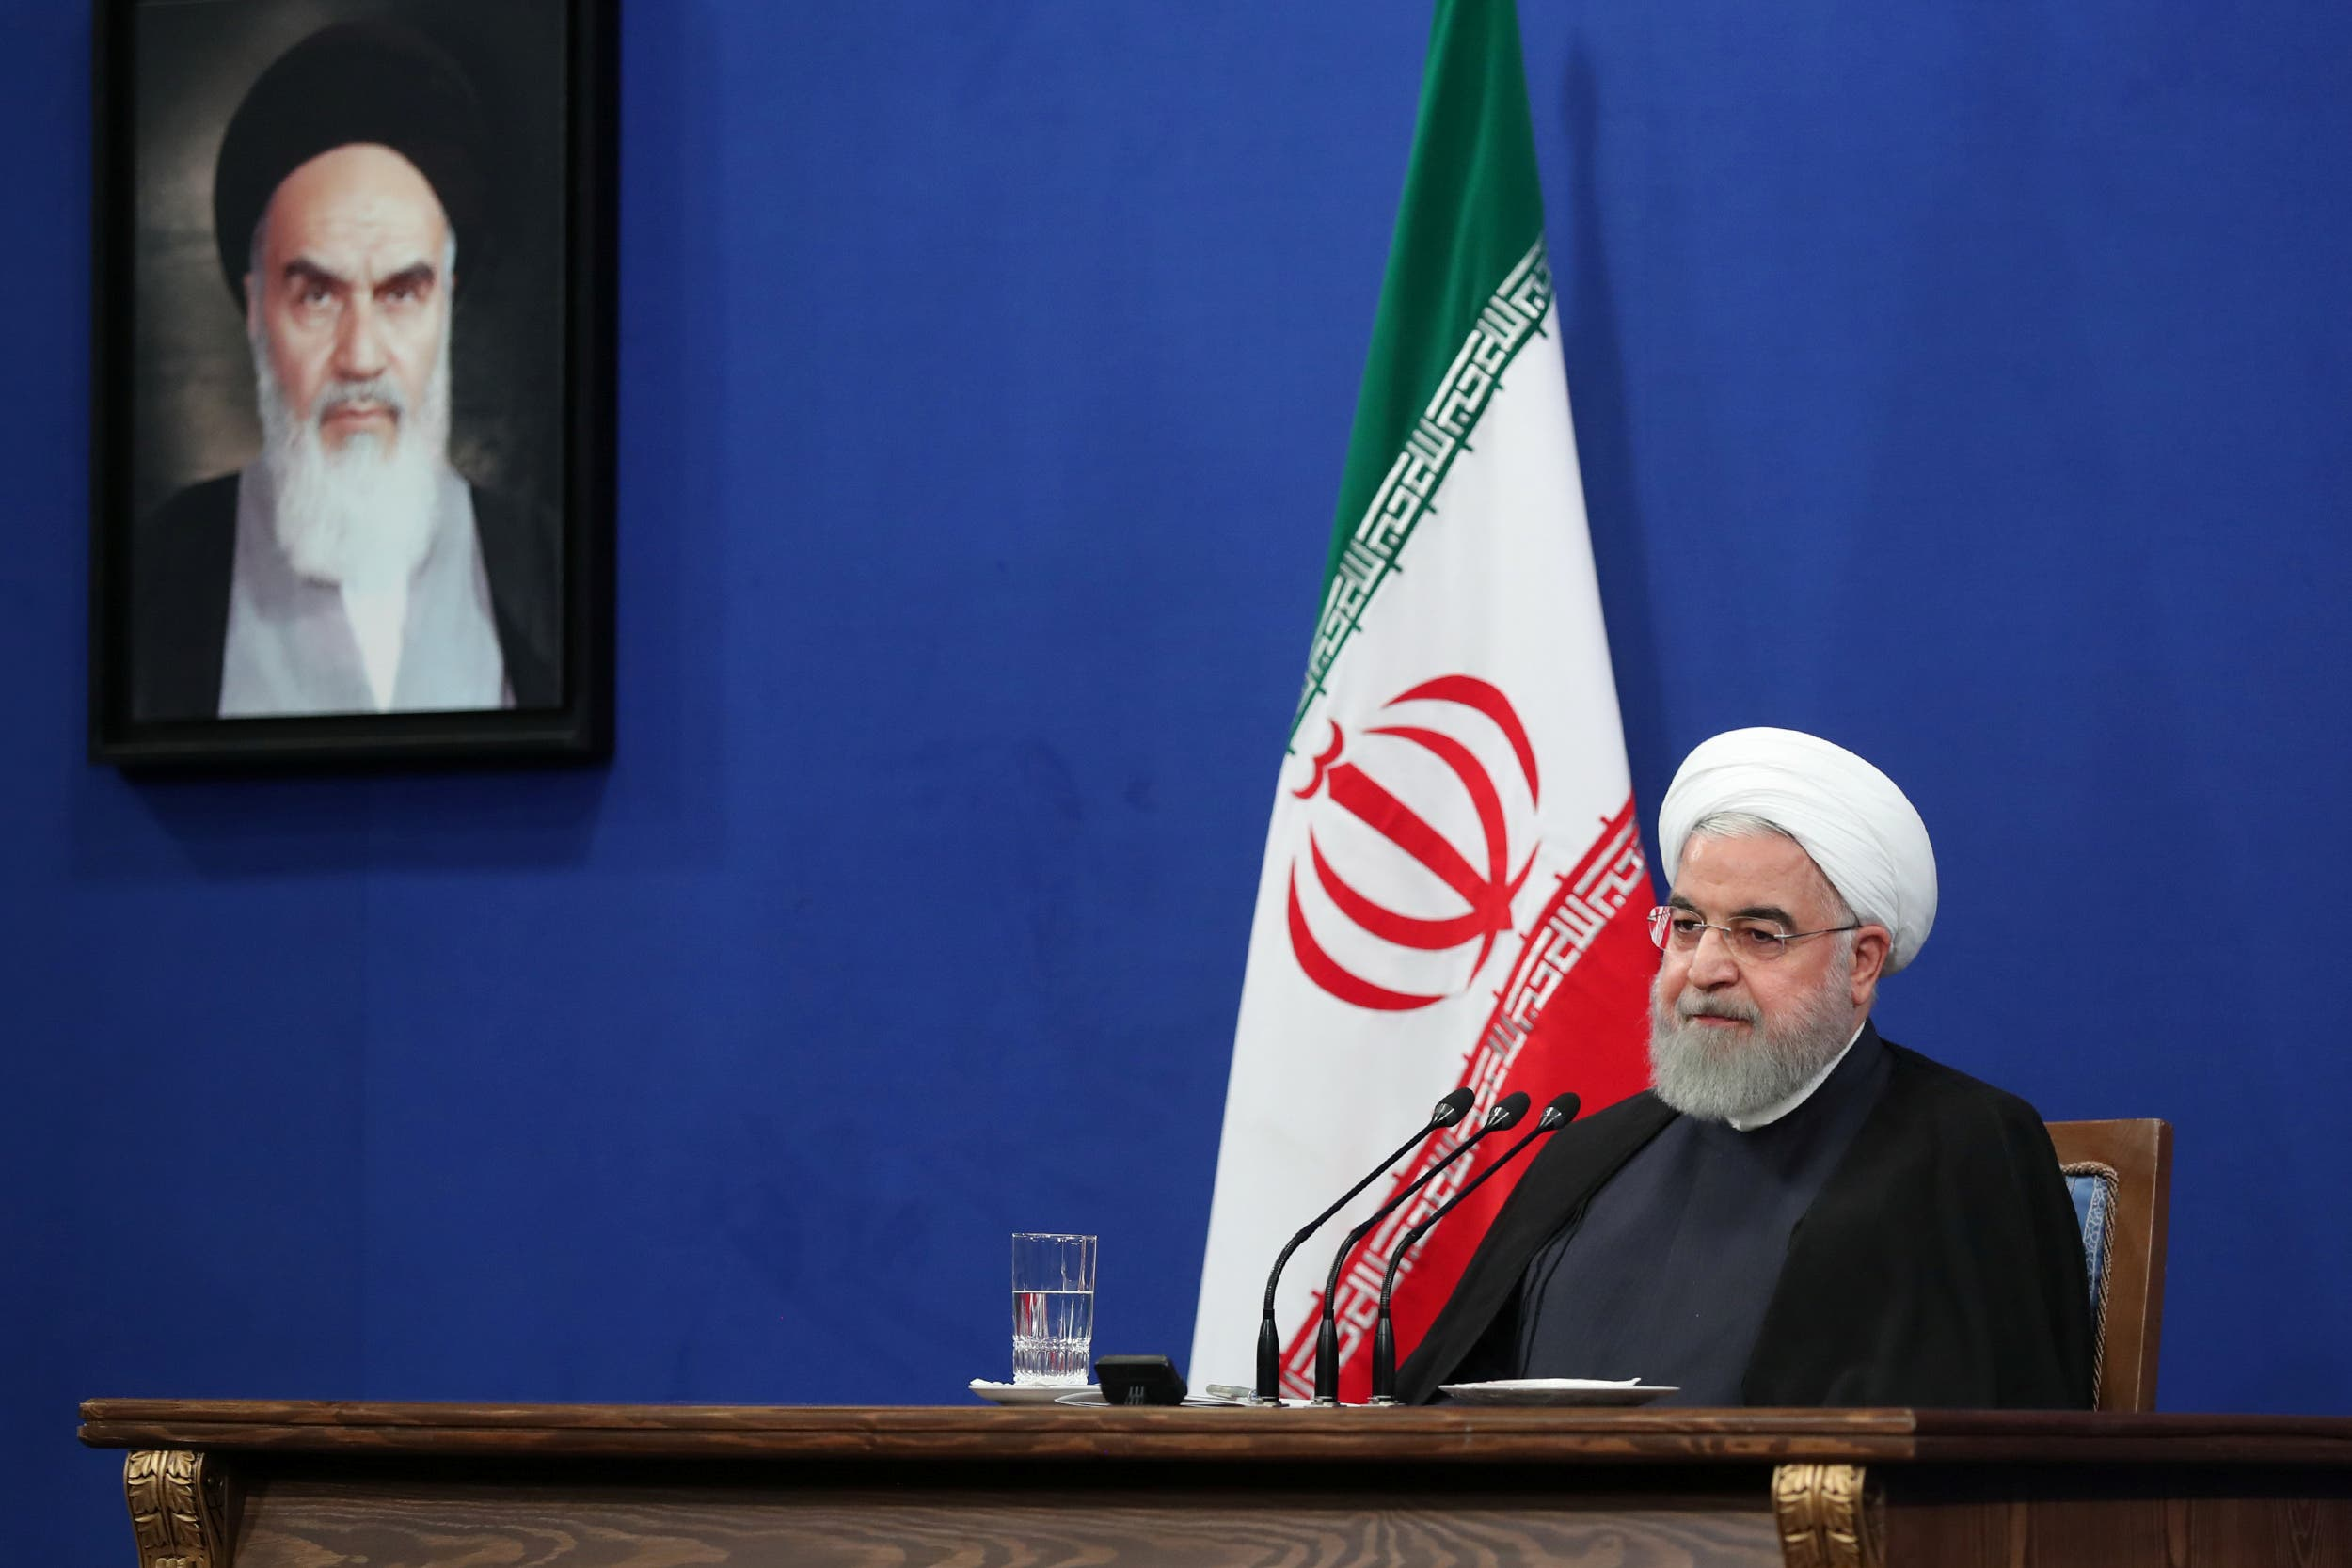 Iran President Hassan Rouhani speaks during press conference in Tehran Iran October 14 2019. (AFP)